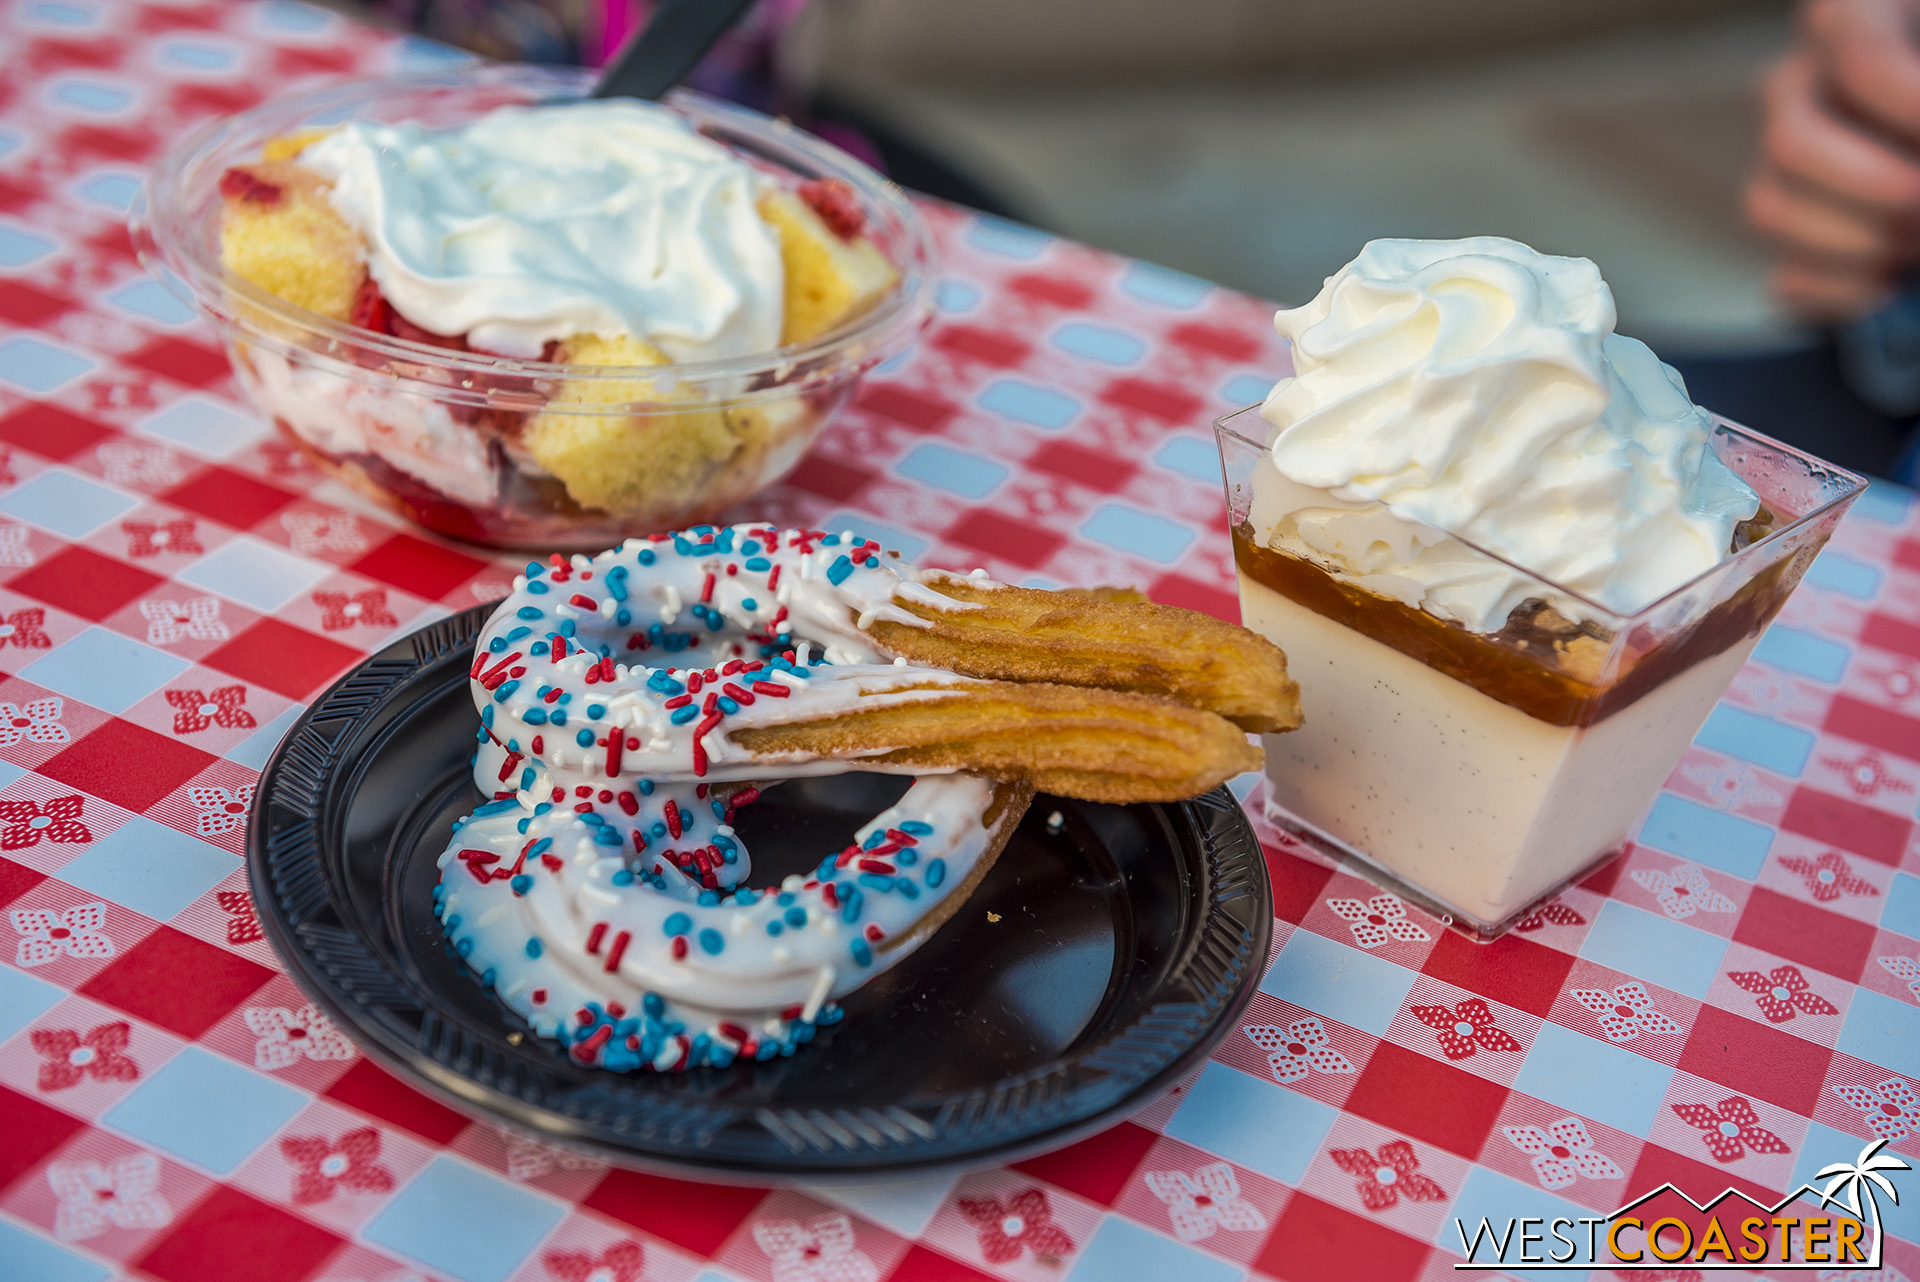 Dipped churros, strawberry shortcake, and peach cobbler.  None of them anything to write home about, unfortunately.  All overly sweet.